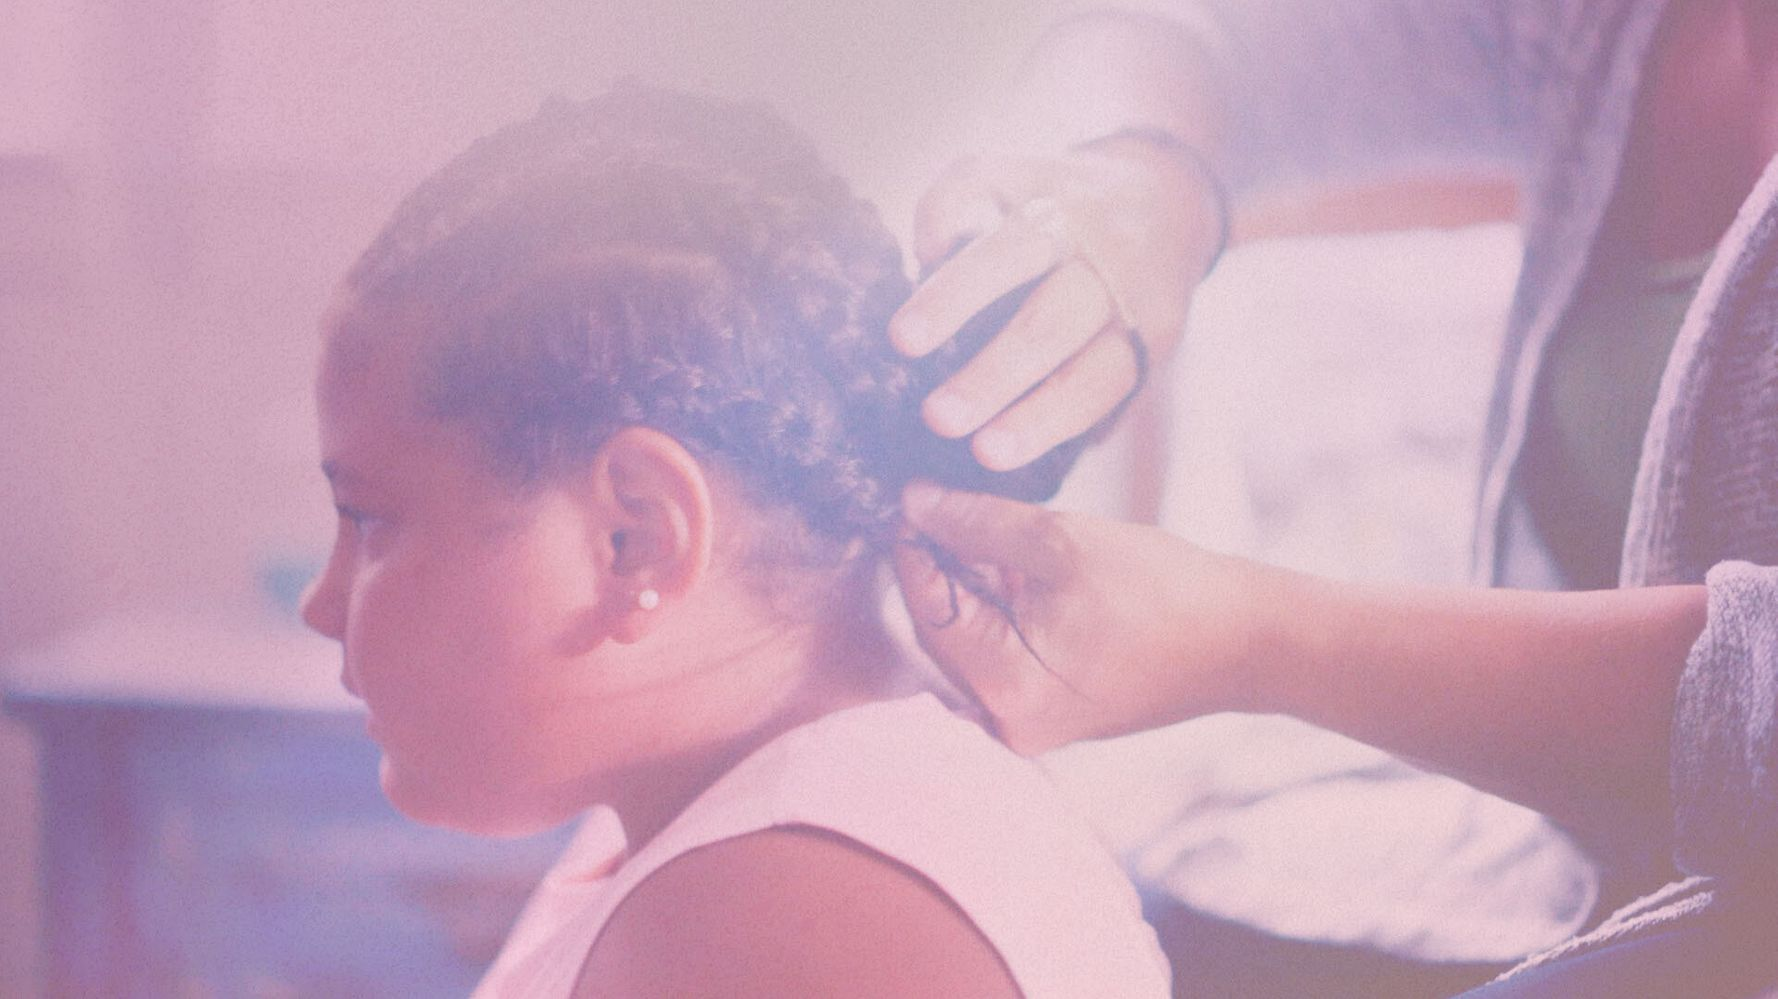 www.huffpost.com: How Hair Experimentation Helped These Parents Bond With Their Adopted Child